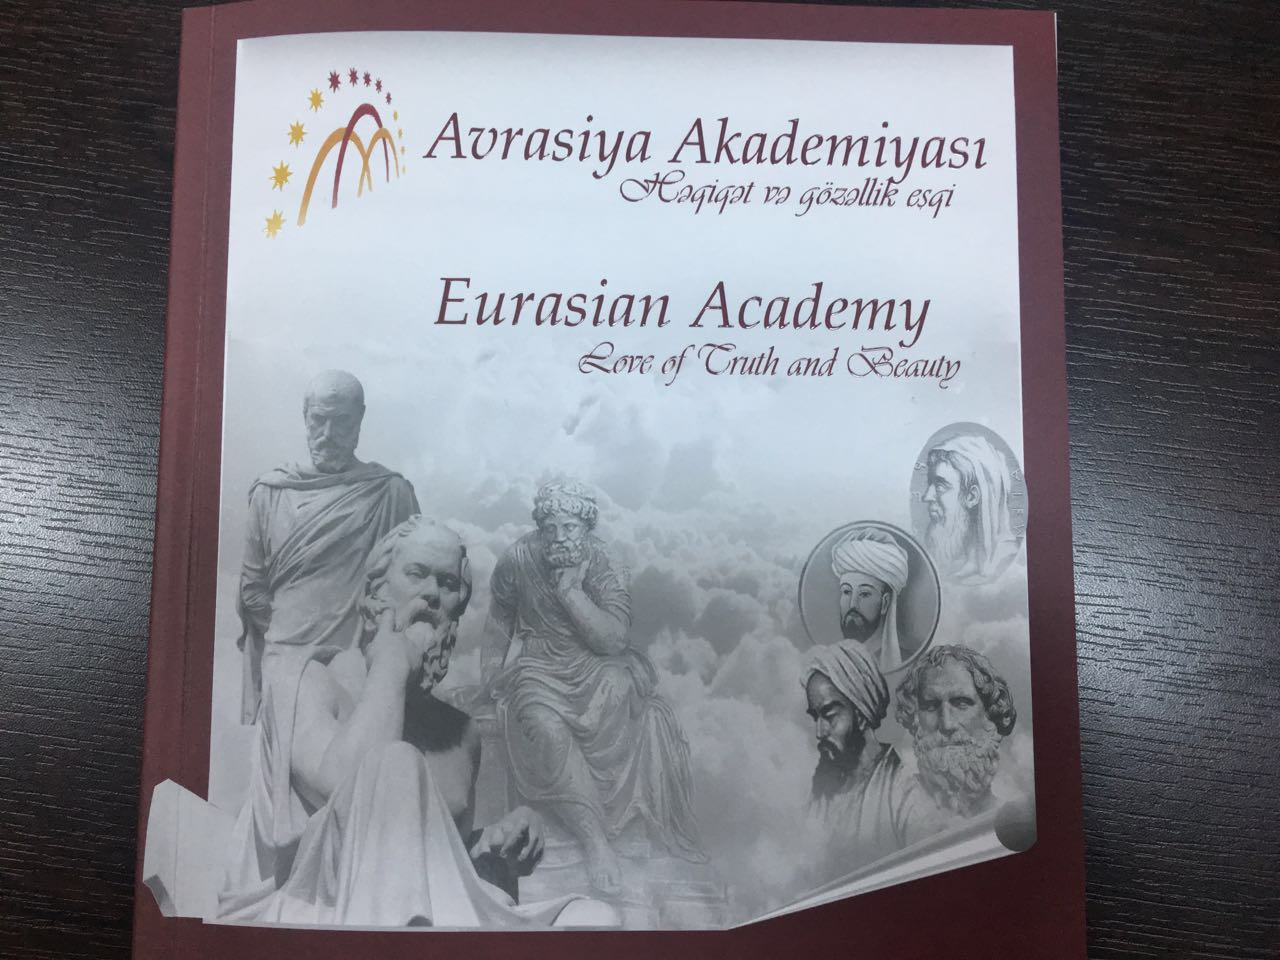 The Book-album of the Eurasian Academy was published